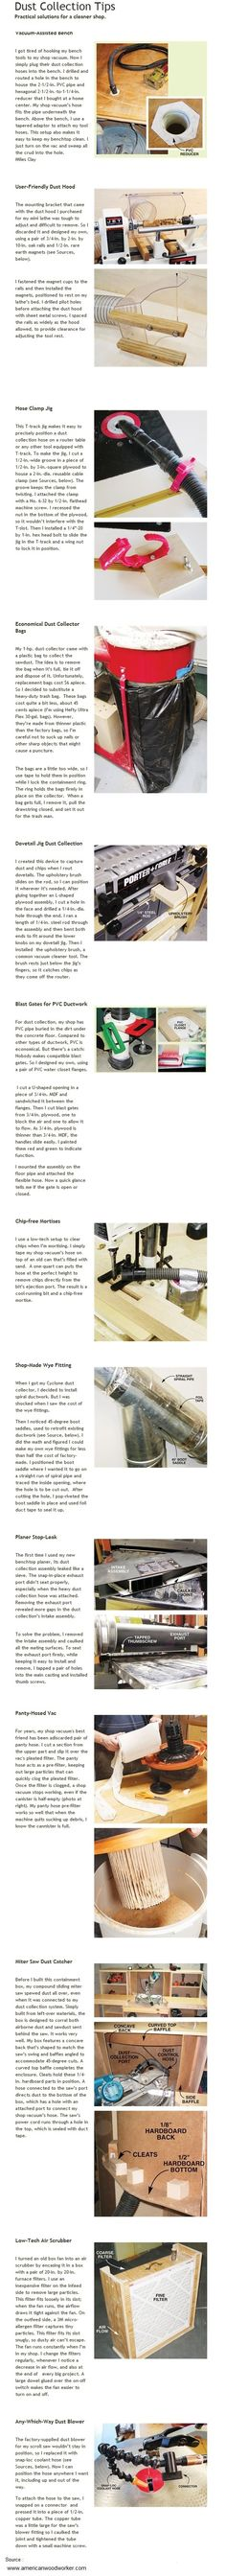 13 Dust Collection Tips  ( by Americanwoodworker.com )